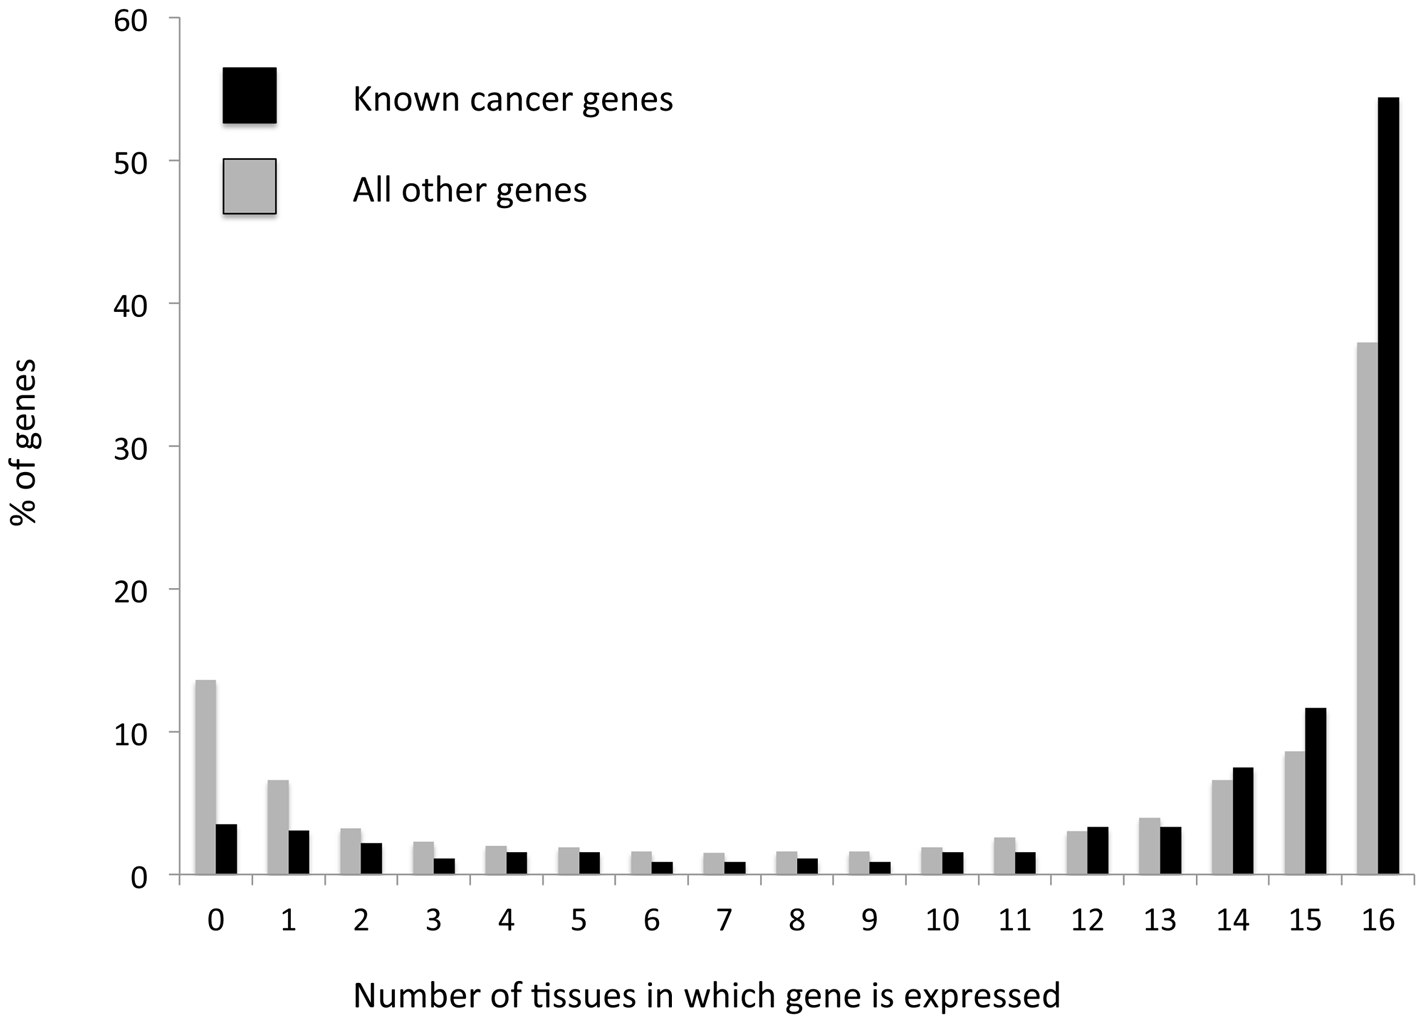 Cancer-associated genes tend to more frequently be globally expressed, and less frequently be expressed in a tissue specific manner than other genes.